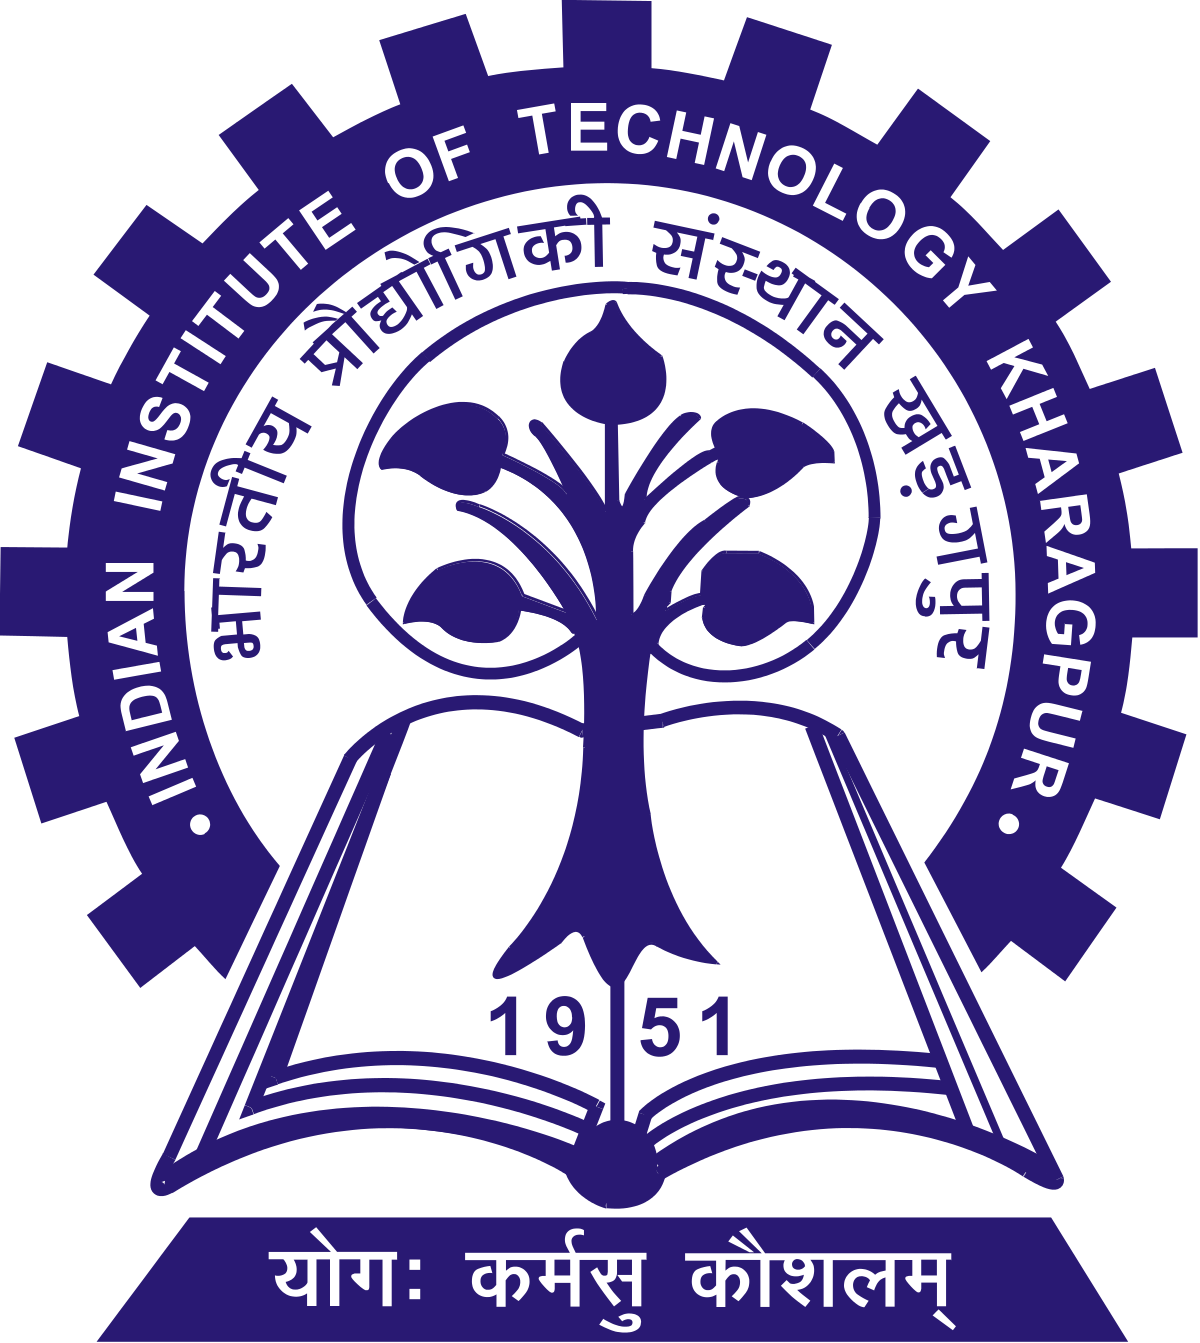 IIT Kharagpur Notification 2020 – Openings for 12 Non-Faculty Posts